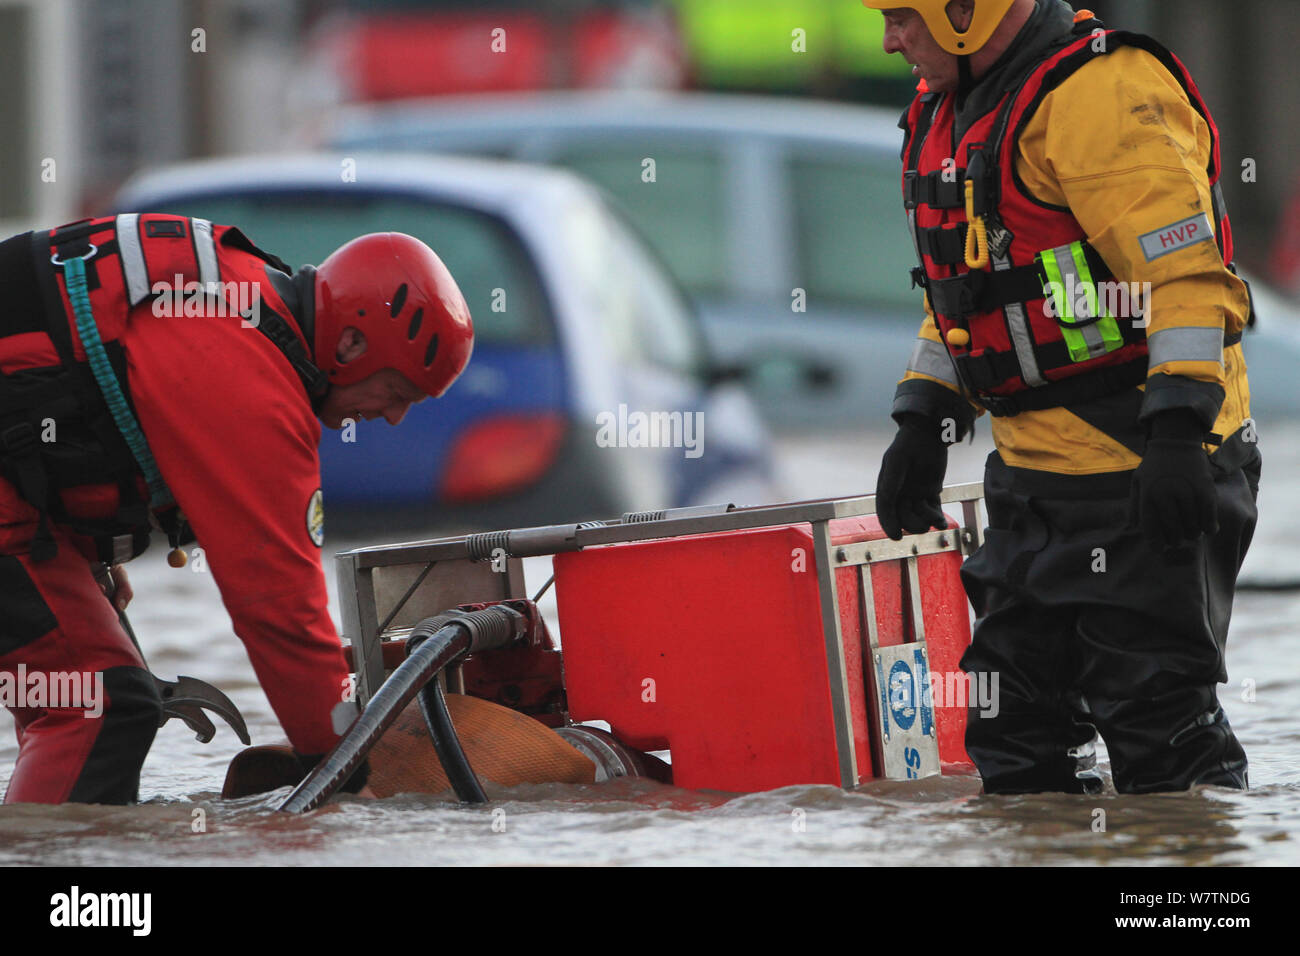 Emergency services pumping floodwaters, after sea defences were breached at Splash Point in Rhyl, Denbighshire, Wales, 5th December 2013. Stock Photo